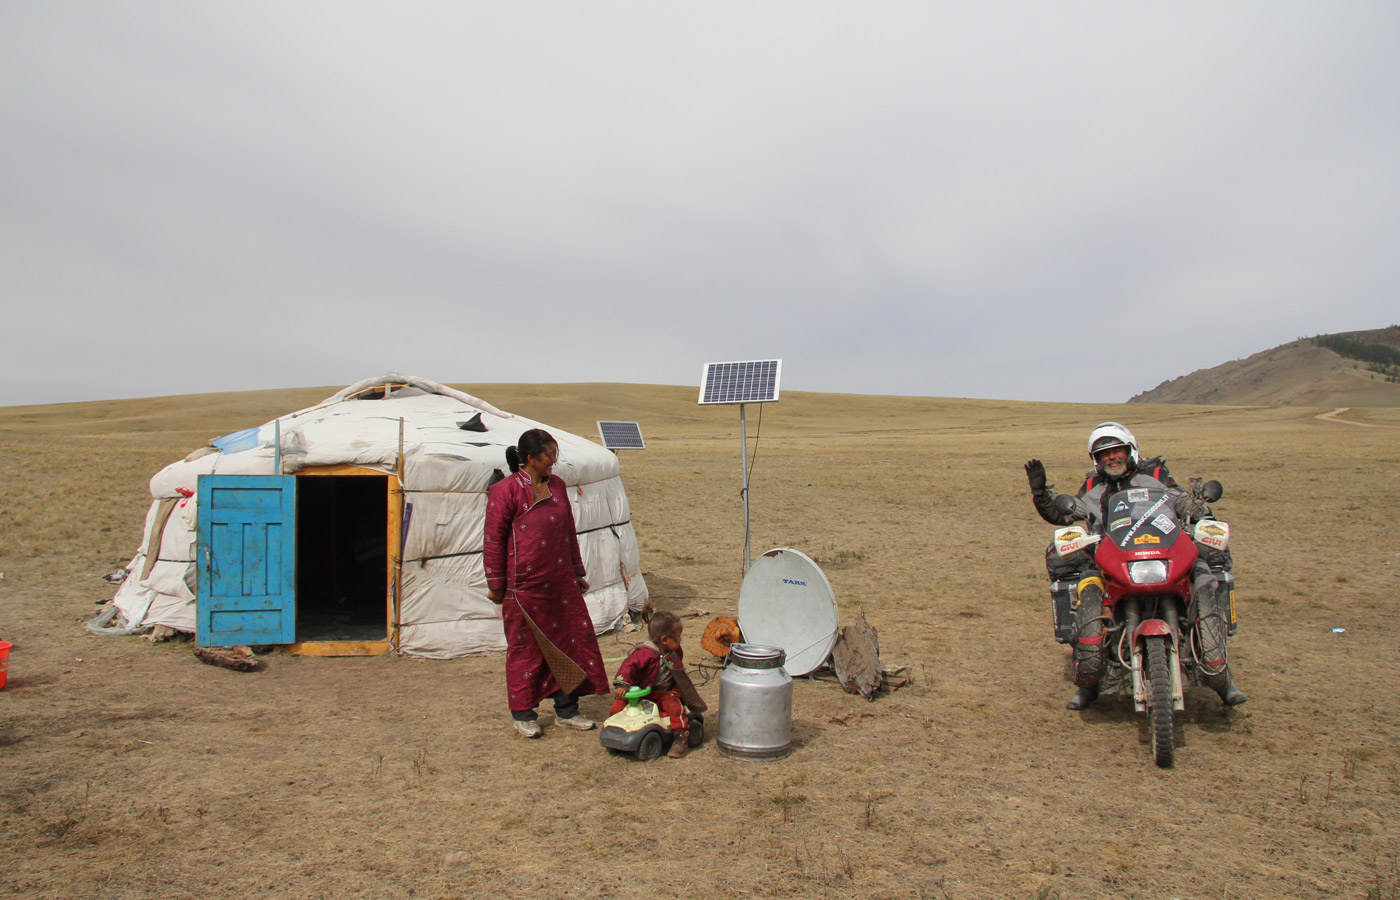 From Italy to Mongolia - Givi Explorer